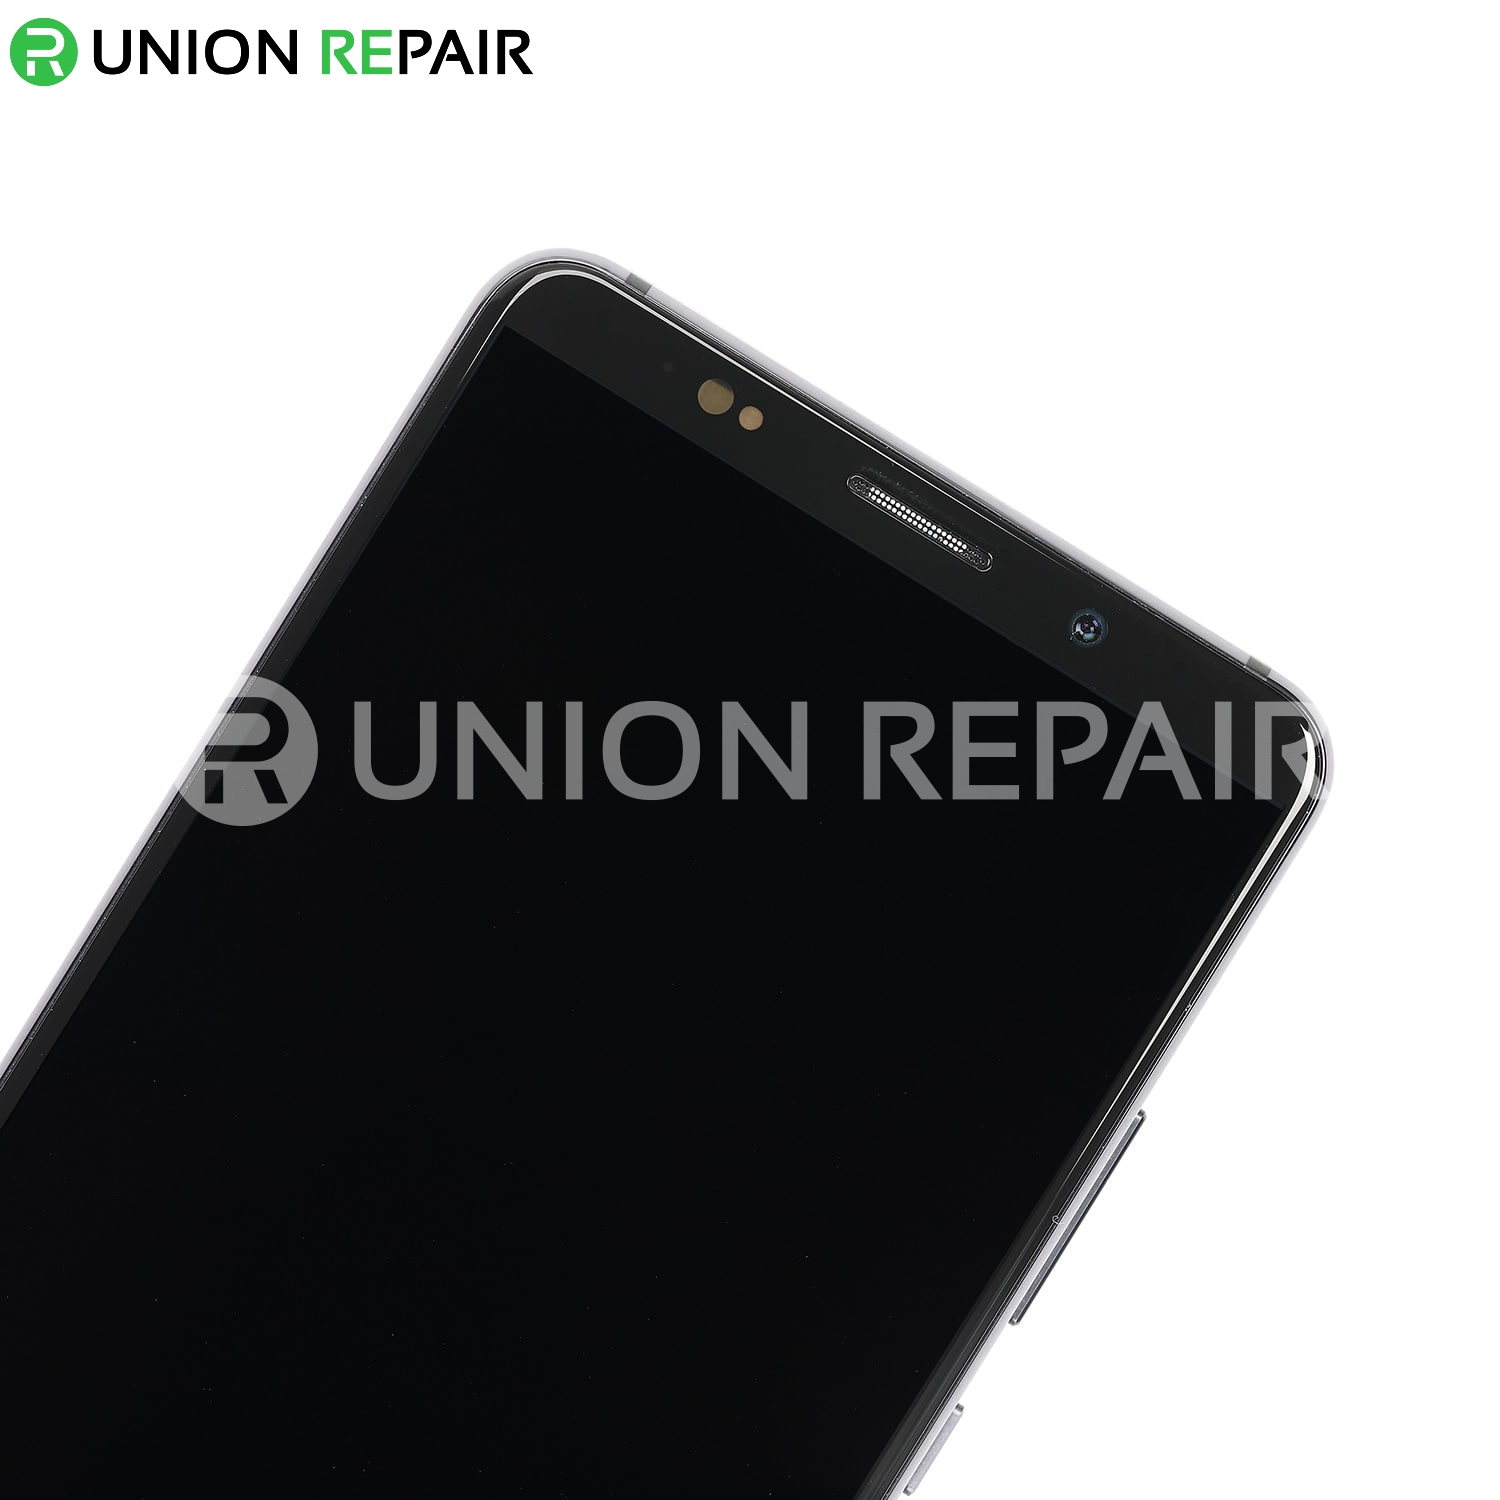 Replacement for Huawei Mate 10 Pro LCD Screen Digitizer Assembly with Frame - Titanium Grey